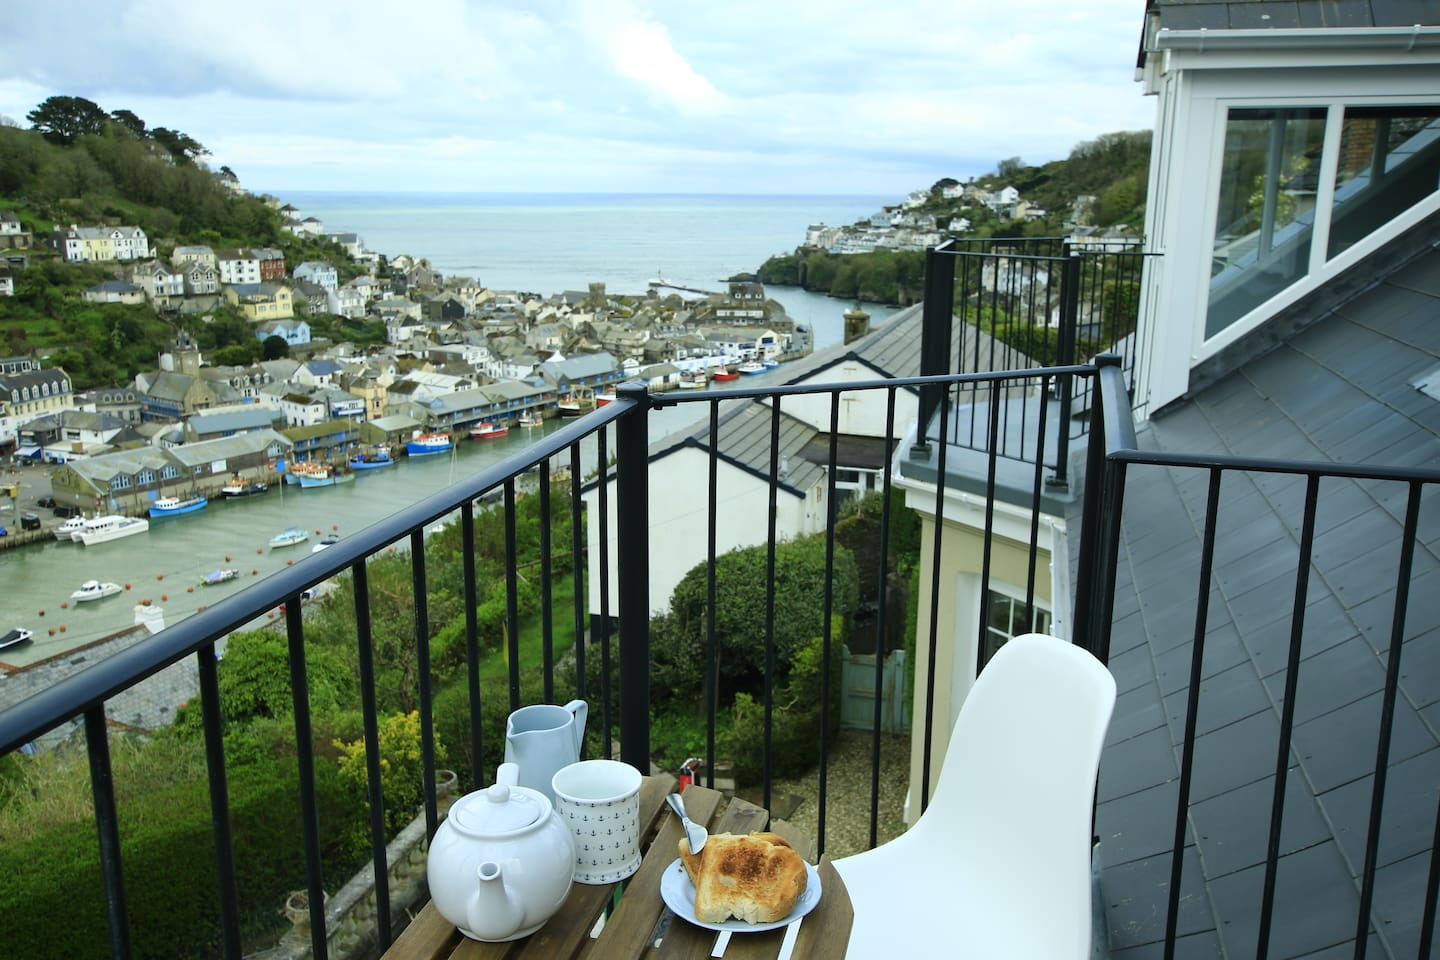 Breakfast on the Balcony with Sea and Estuary views.